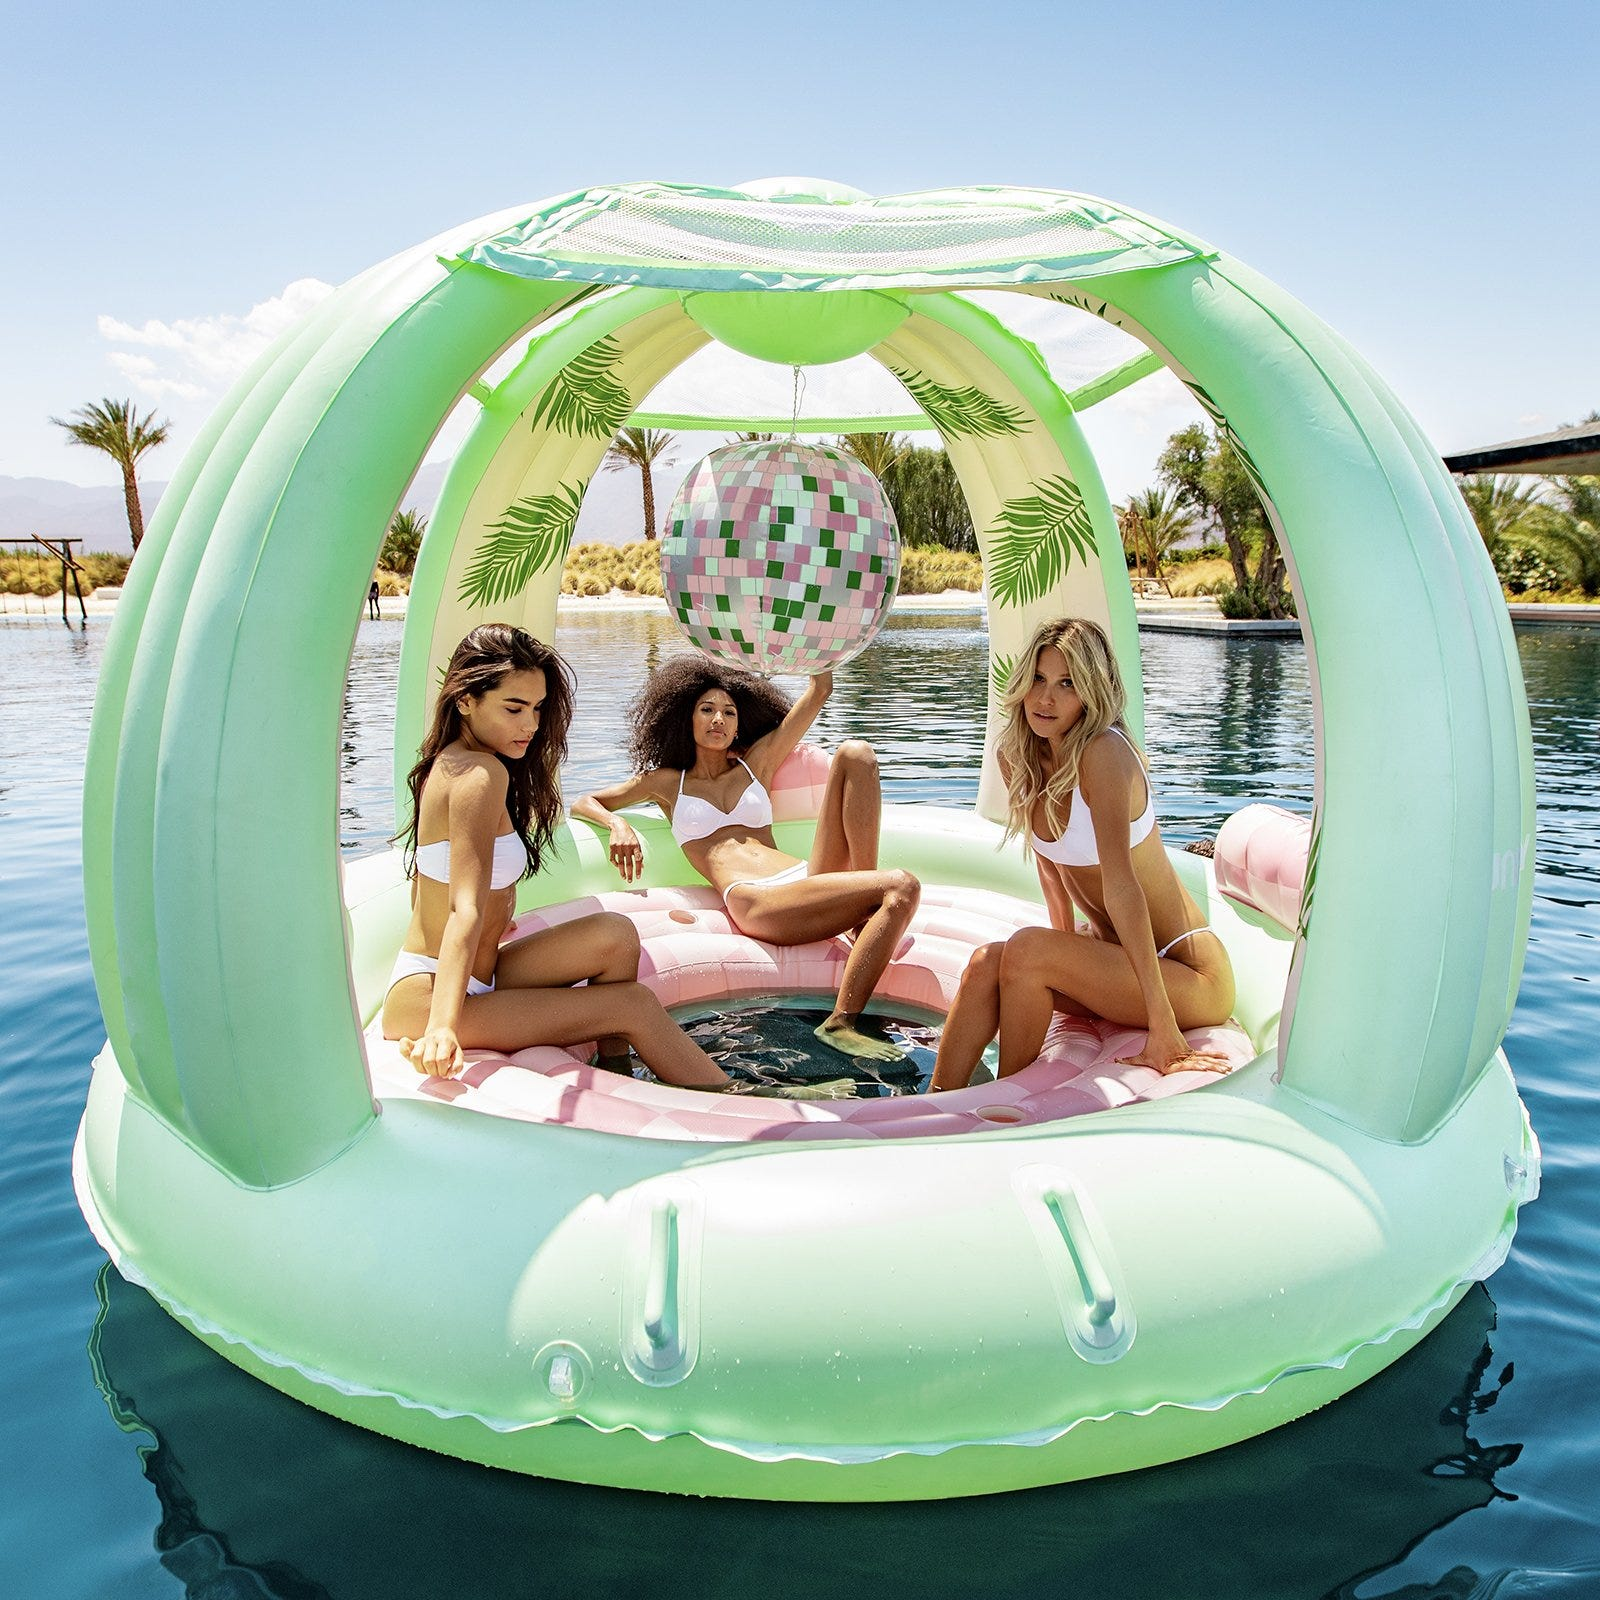 Three women sit in the middle of a floating pink and green dome with an inflatable disco ball hanging from the center.